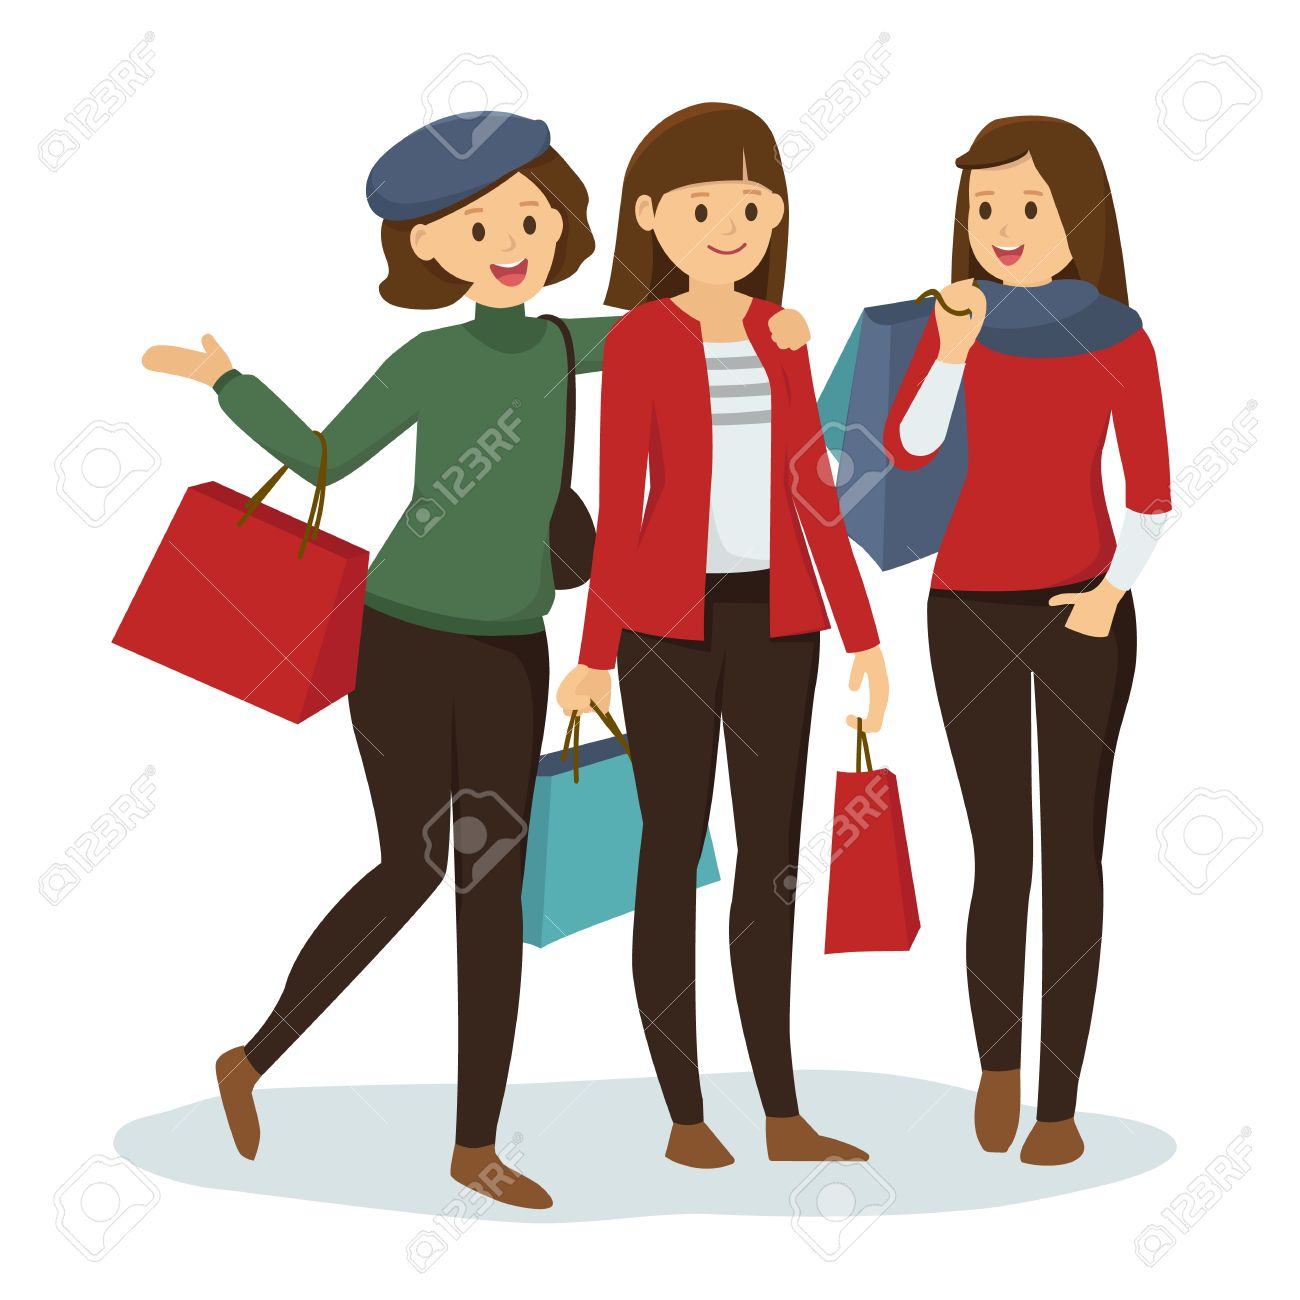 Shopping With Friends Clipart.